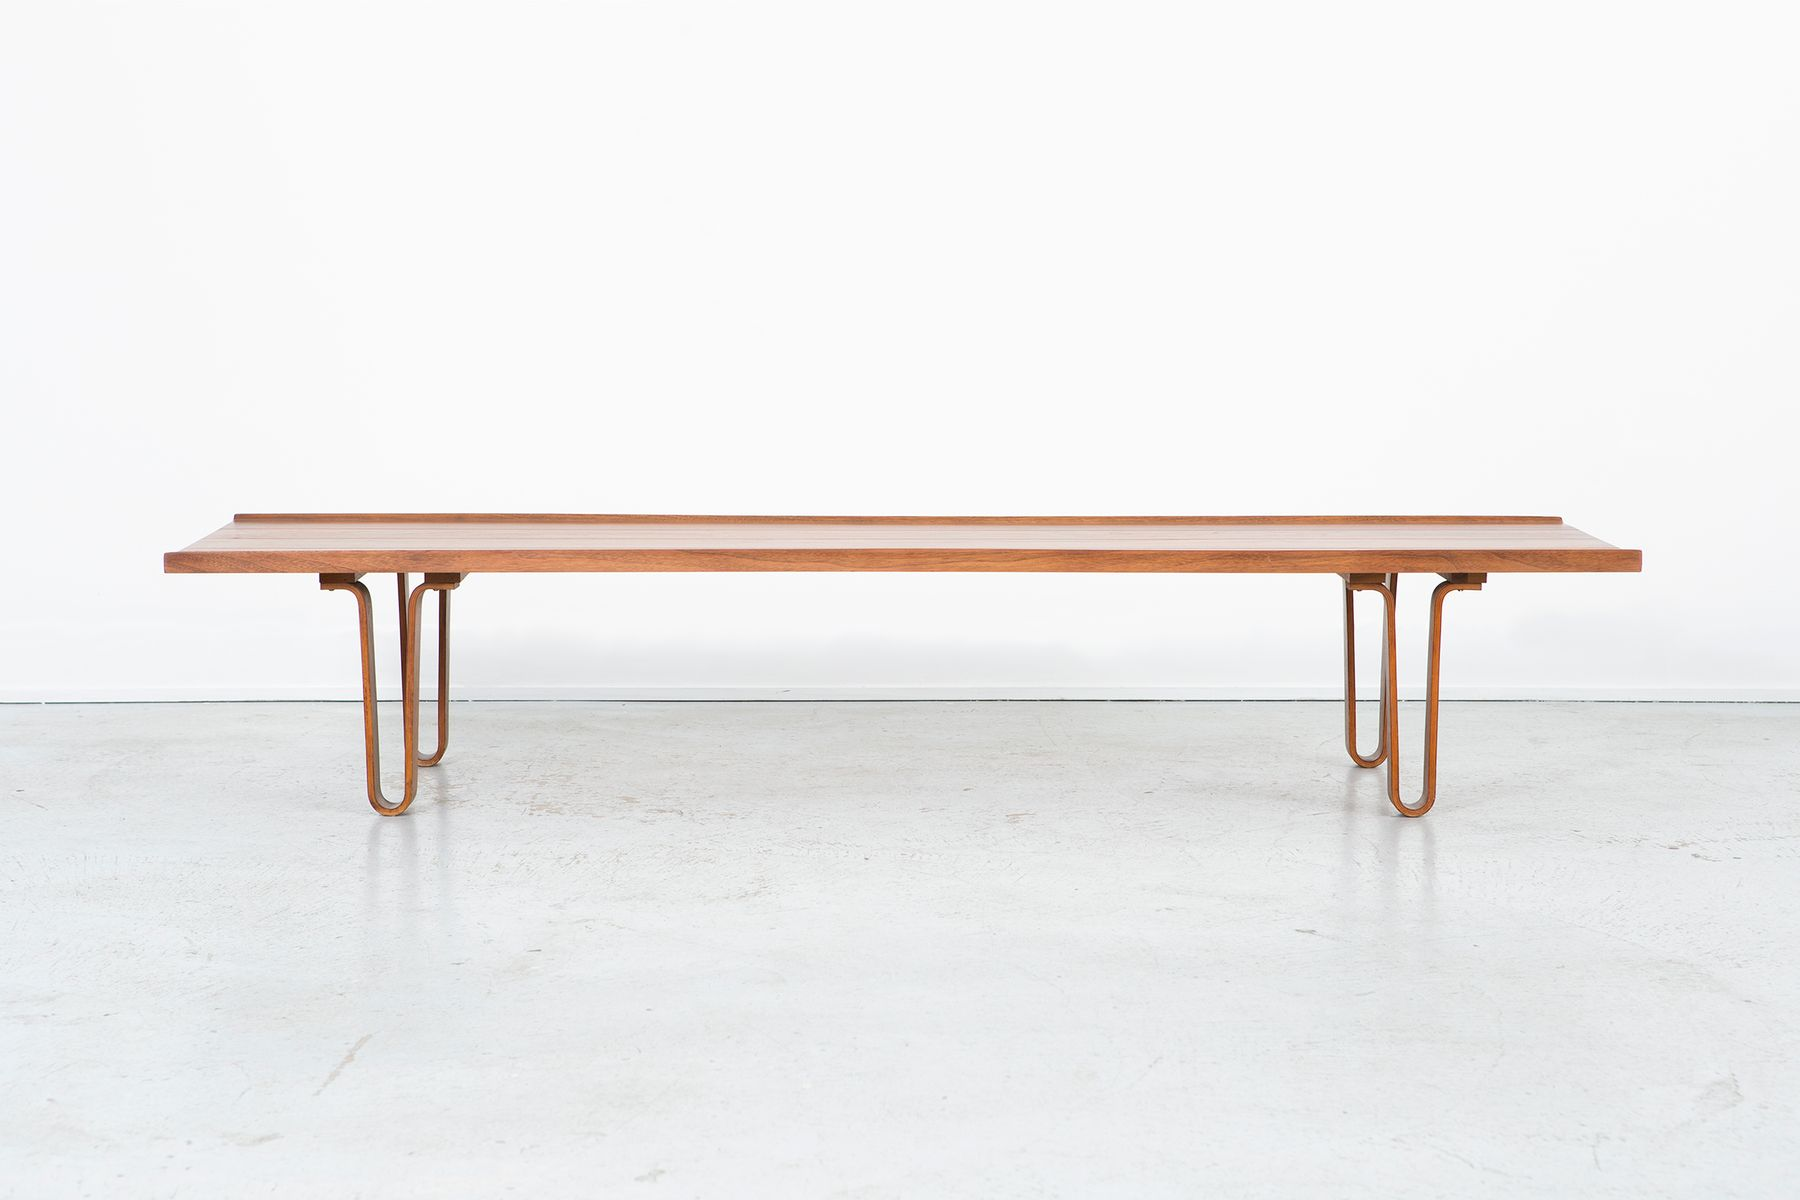 Vintage Long John Bench by Edward Wormley for Dunbar for sale at